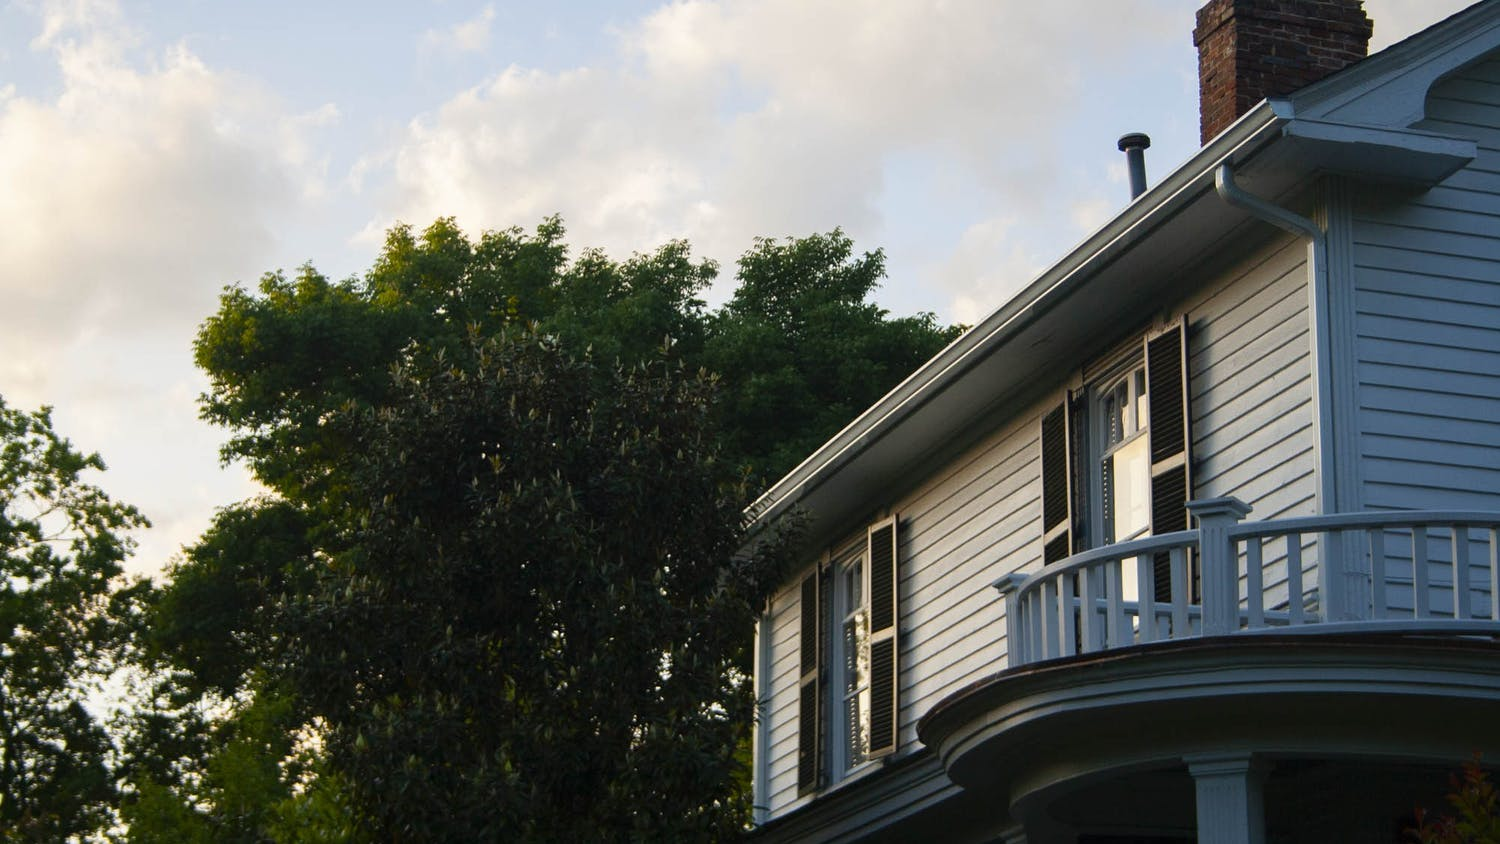 An off-campus house on Franklin Street pictured on Sunday, May 17, 2020.